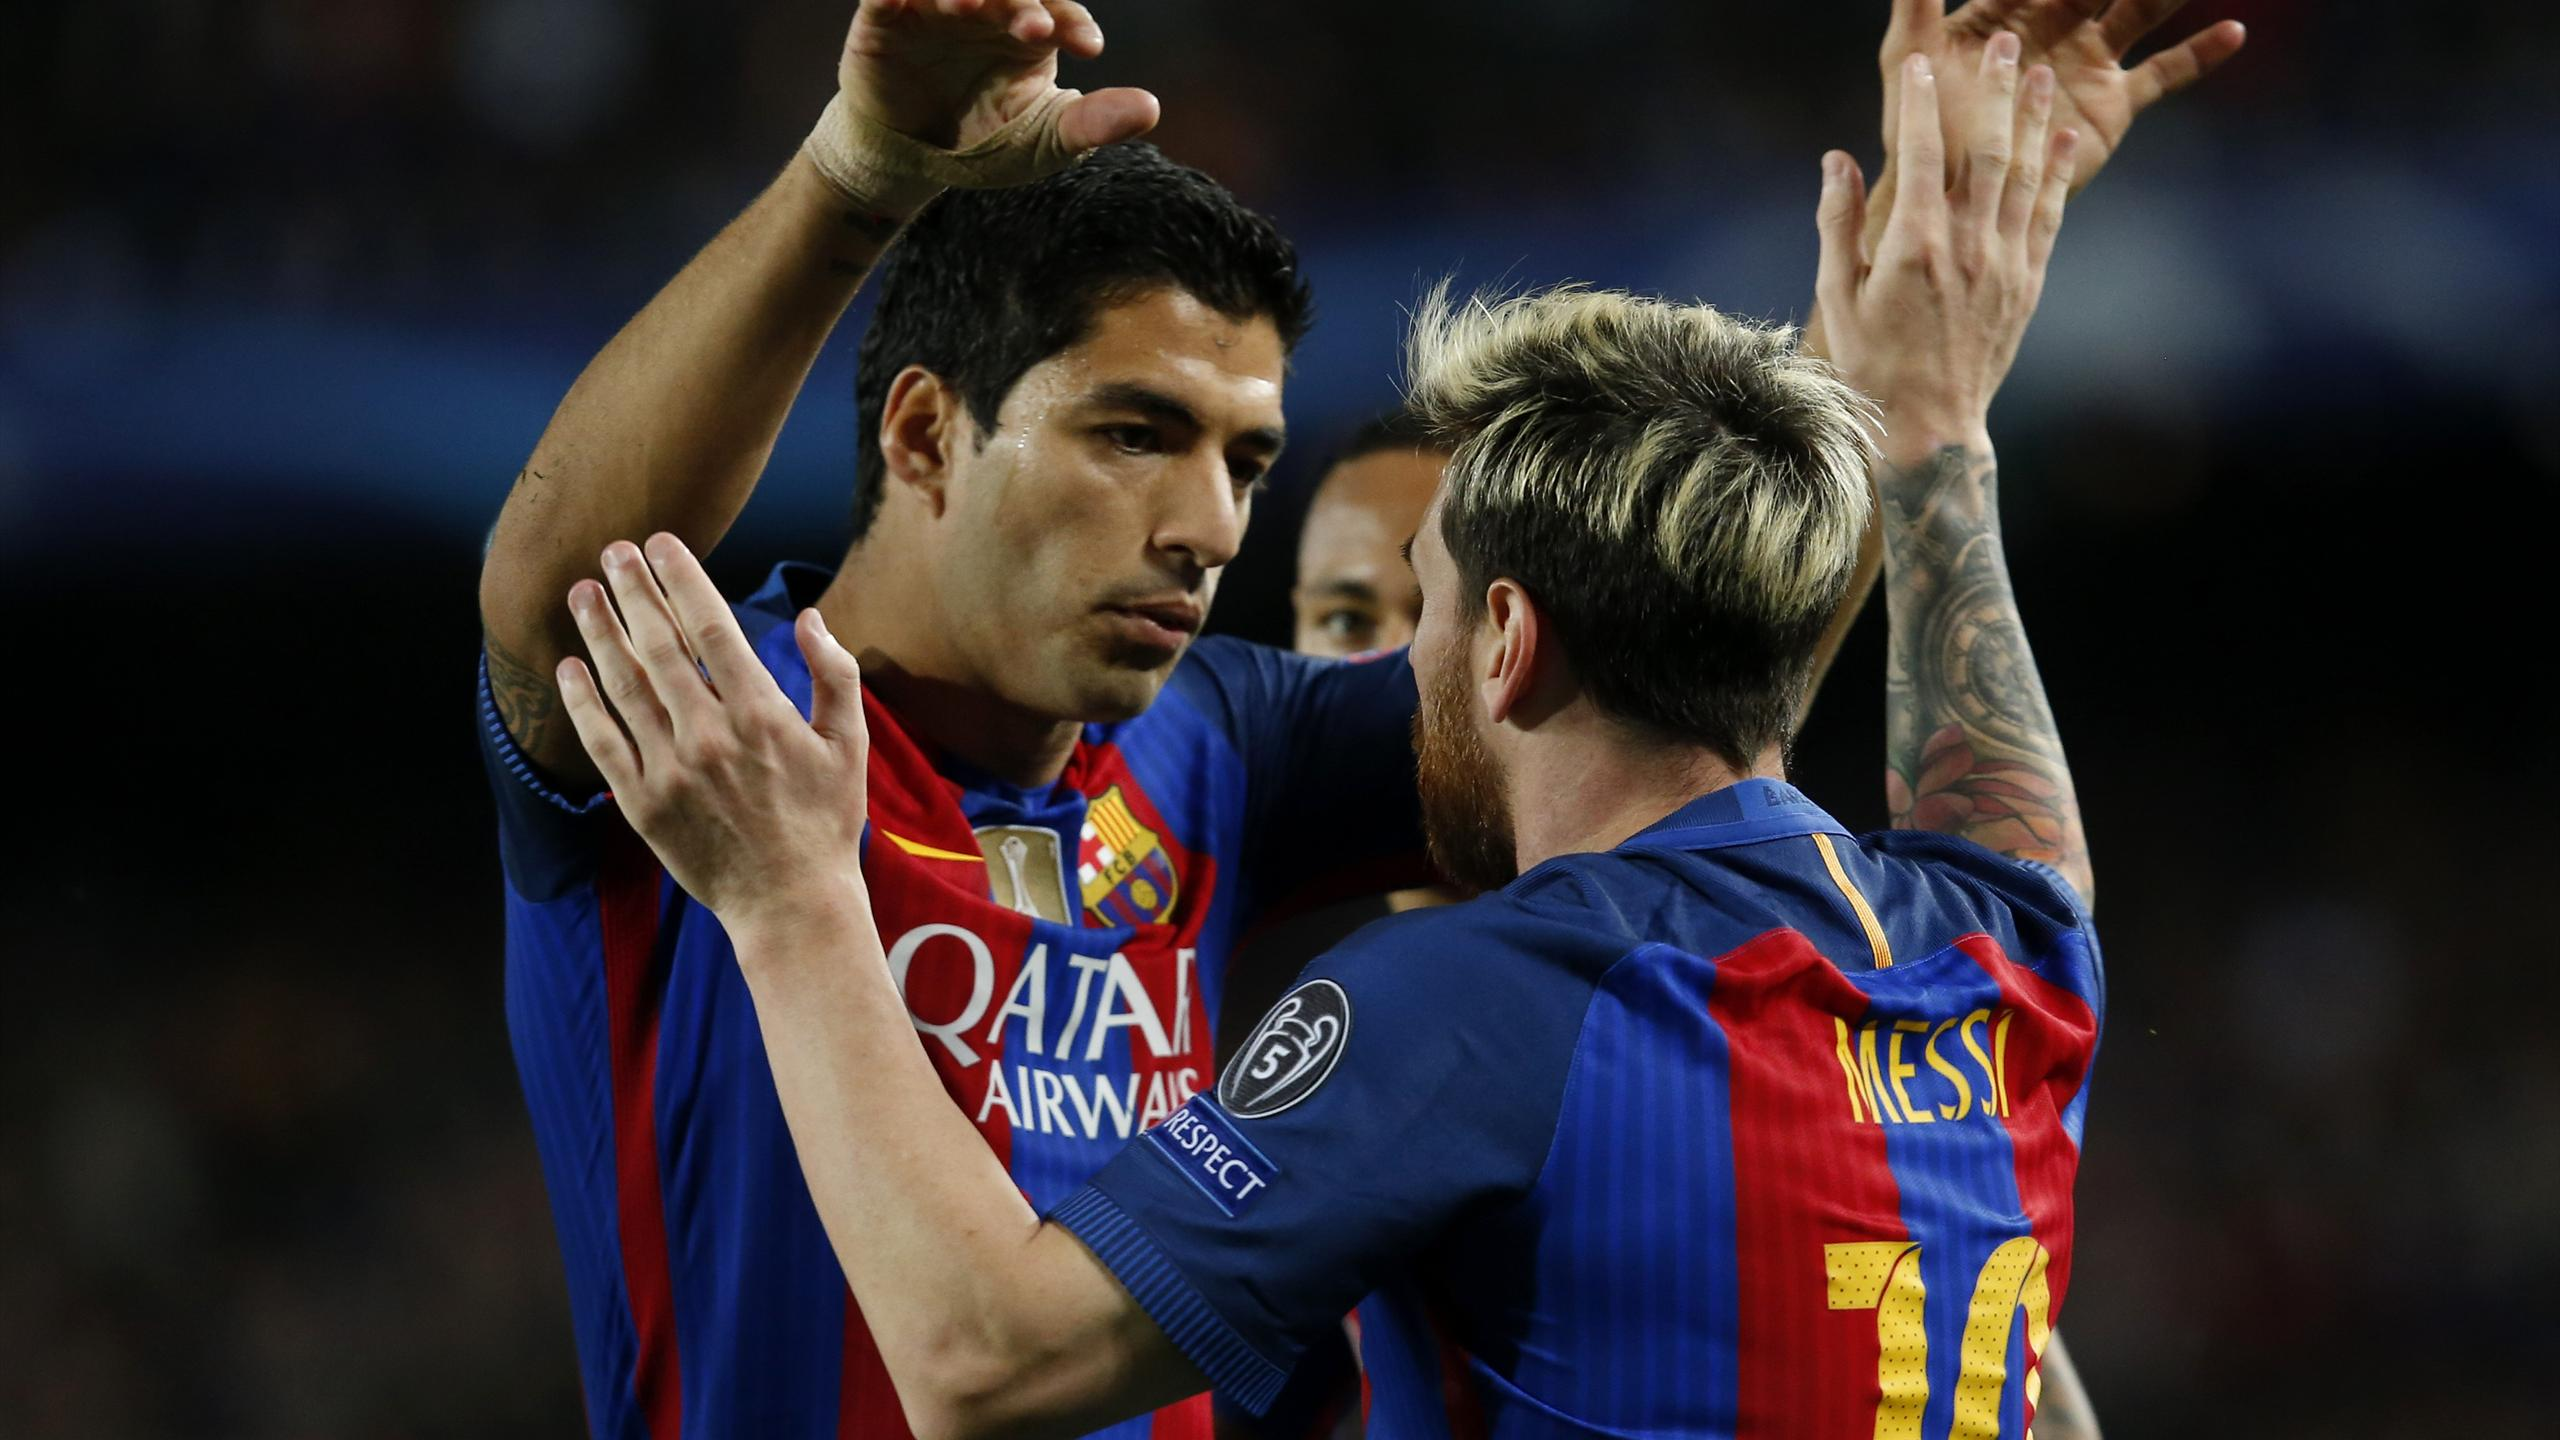 Barcelona's Argentinian forward Lionel Messi celebrates with Luis Suarez during their Champions League clash against Manchester City at the Camp Nou